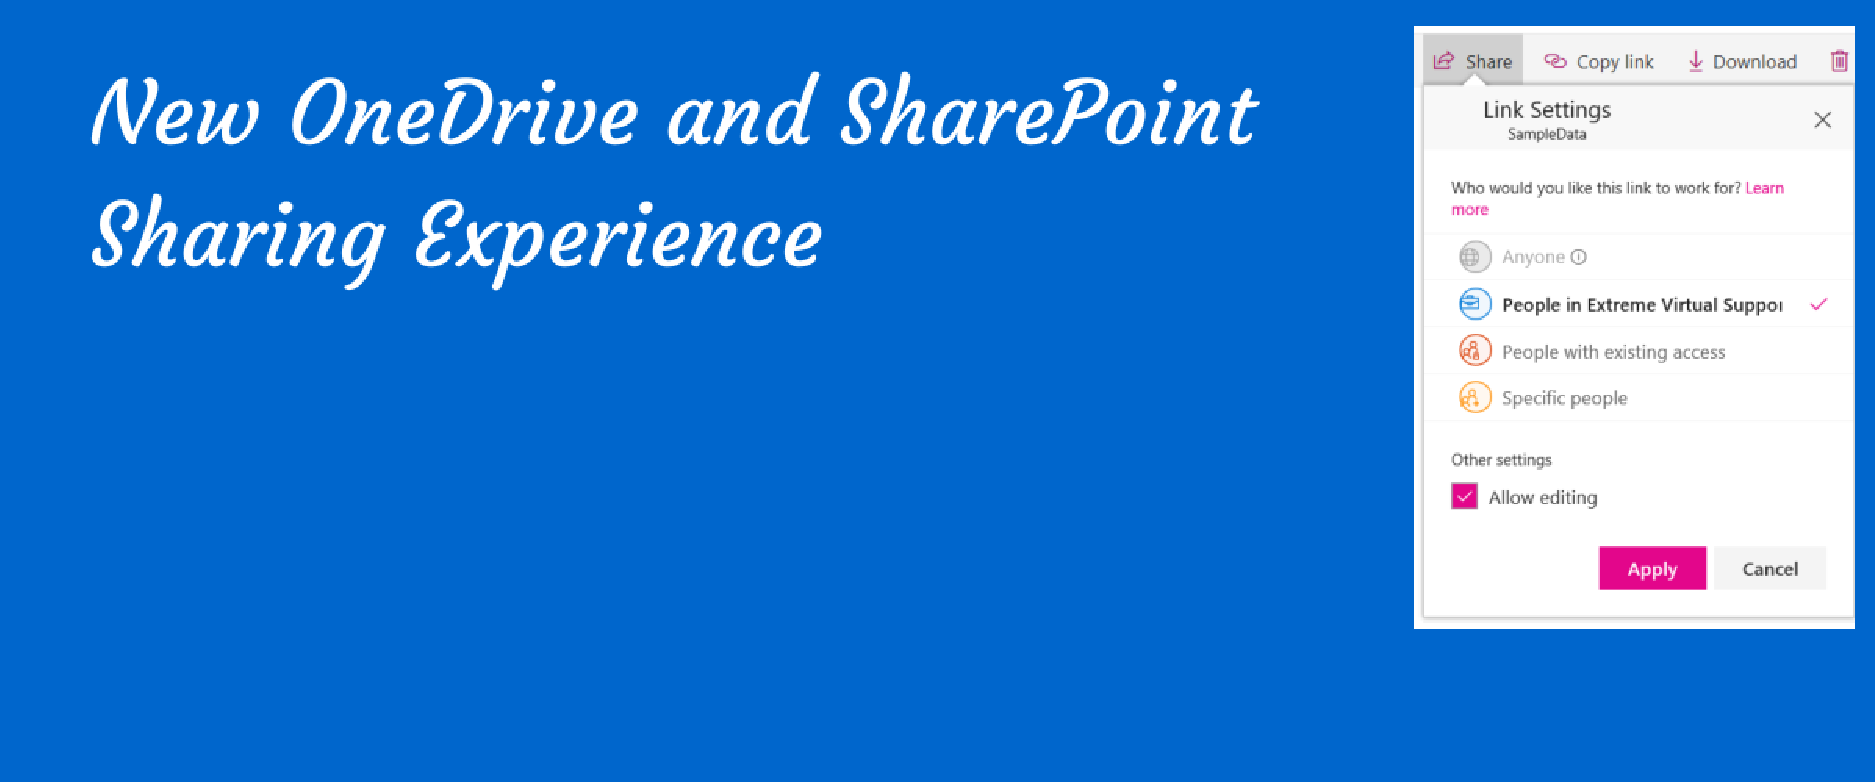 OneDrive and SharePoint new sharing experience